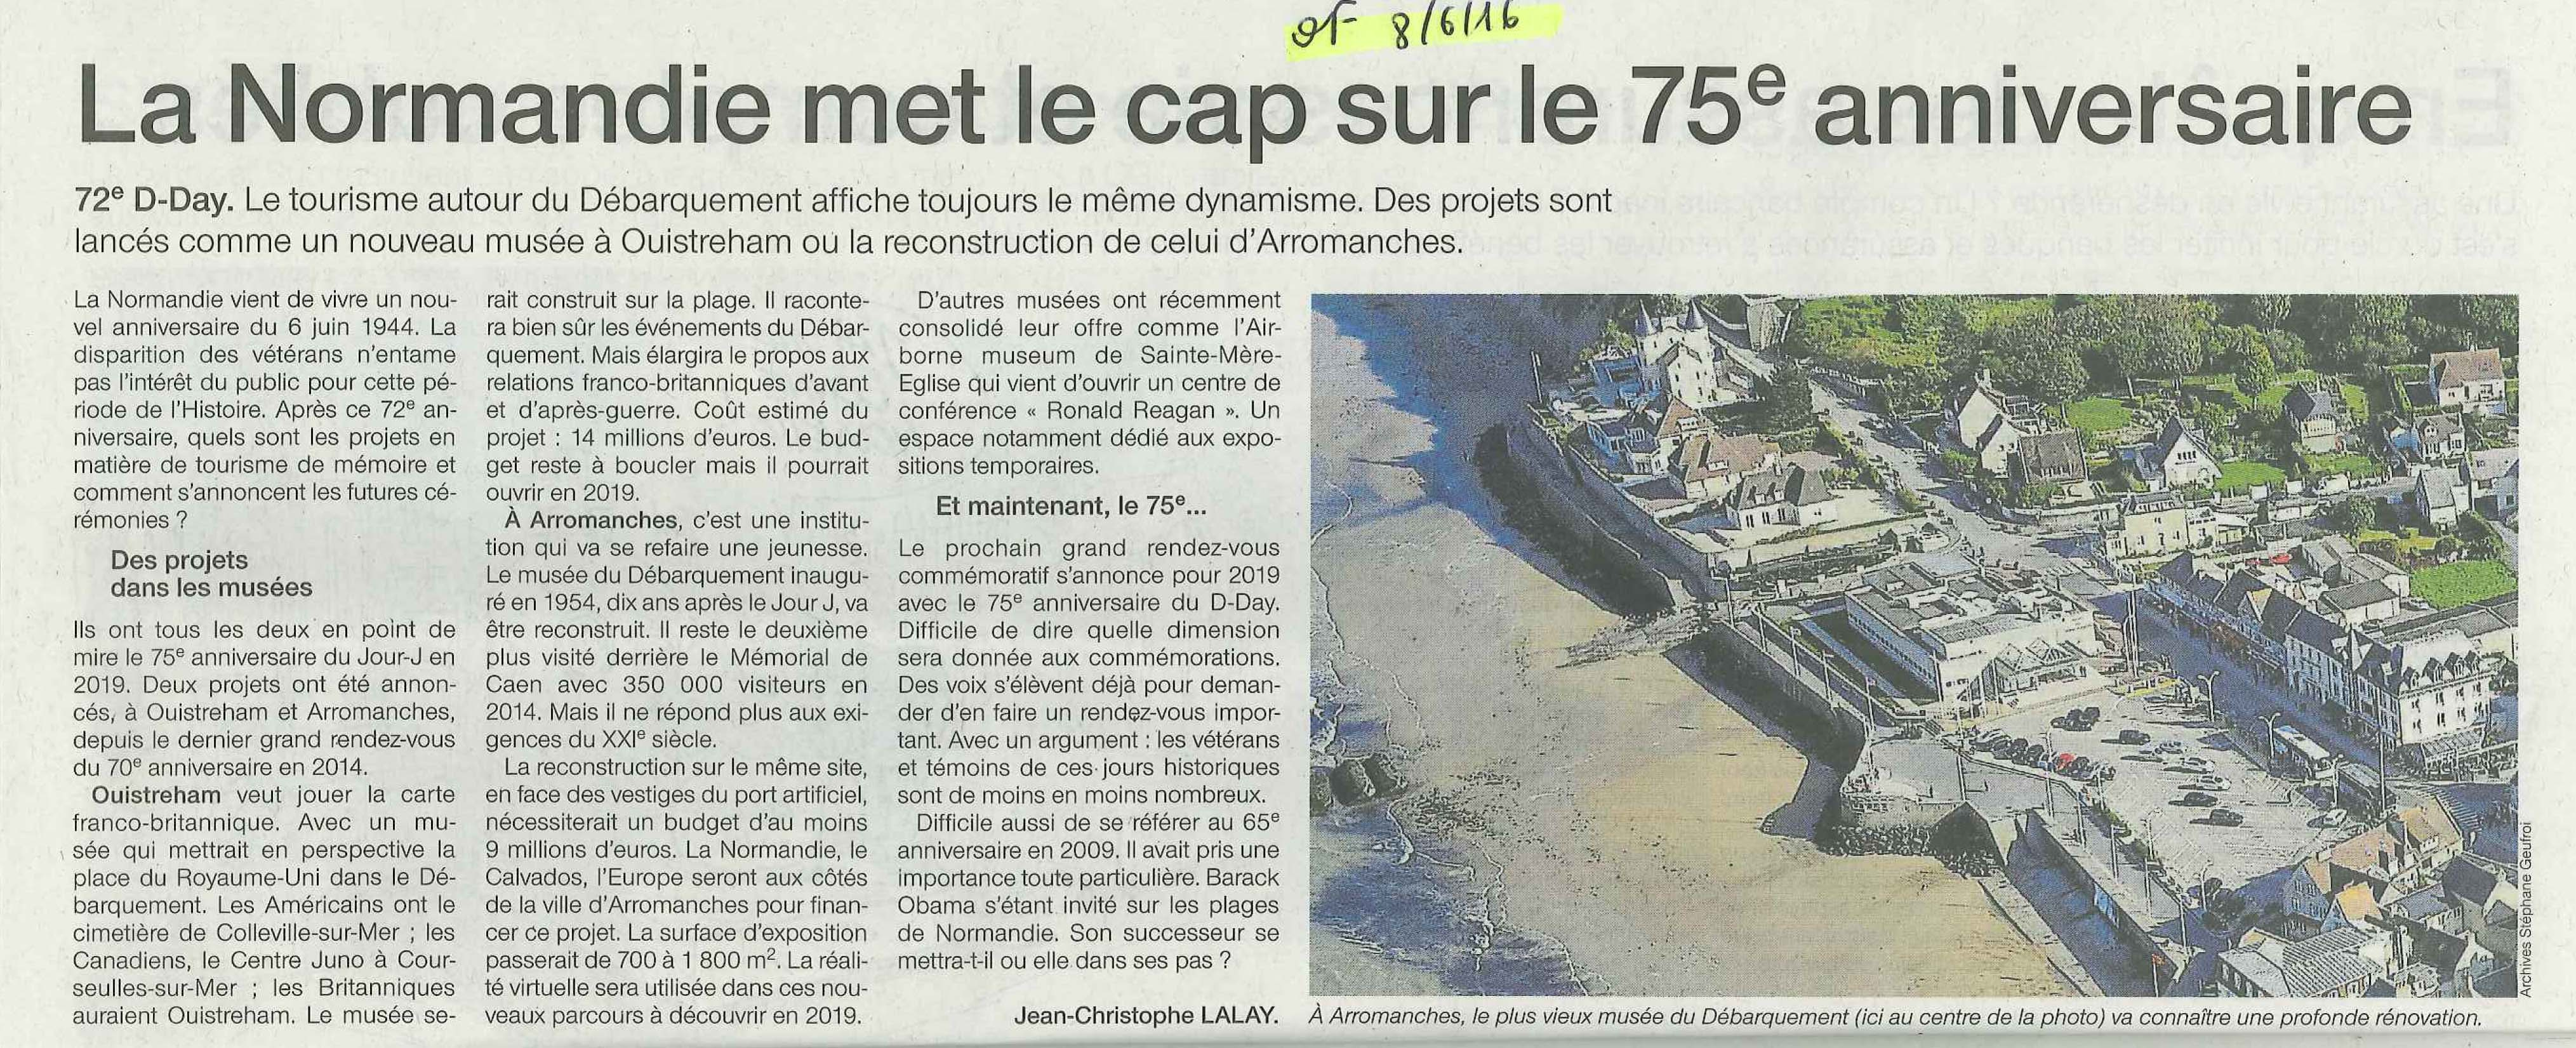 article-ouest-france-080616